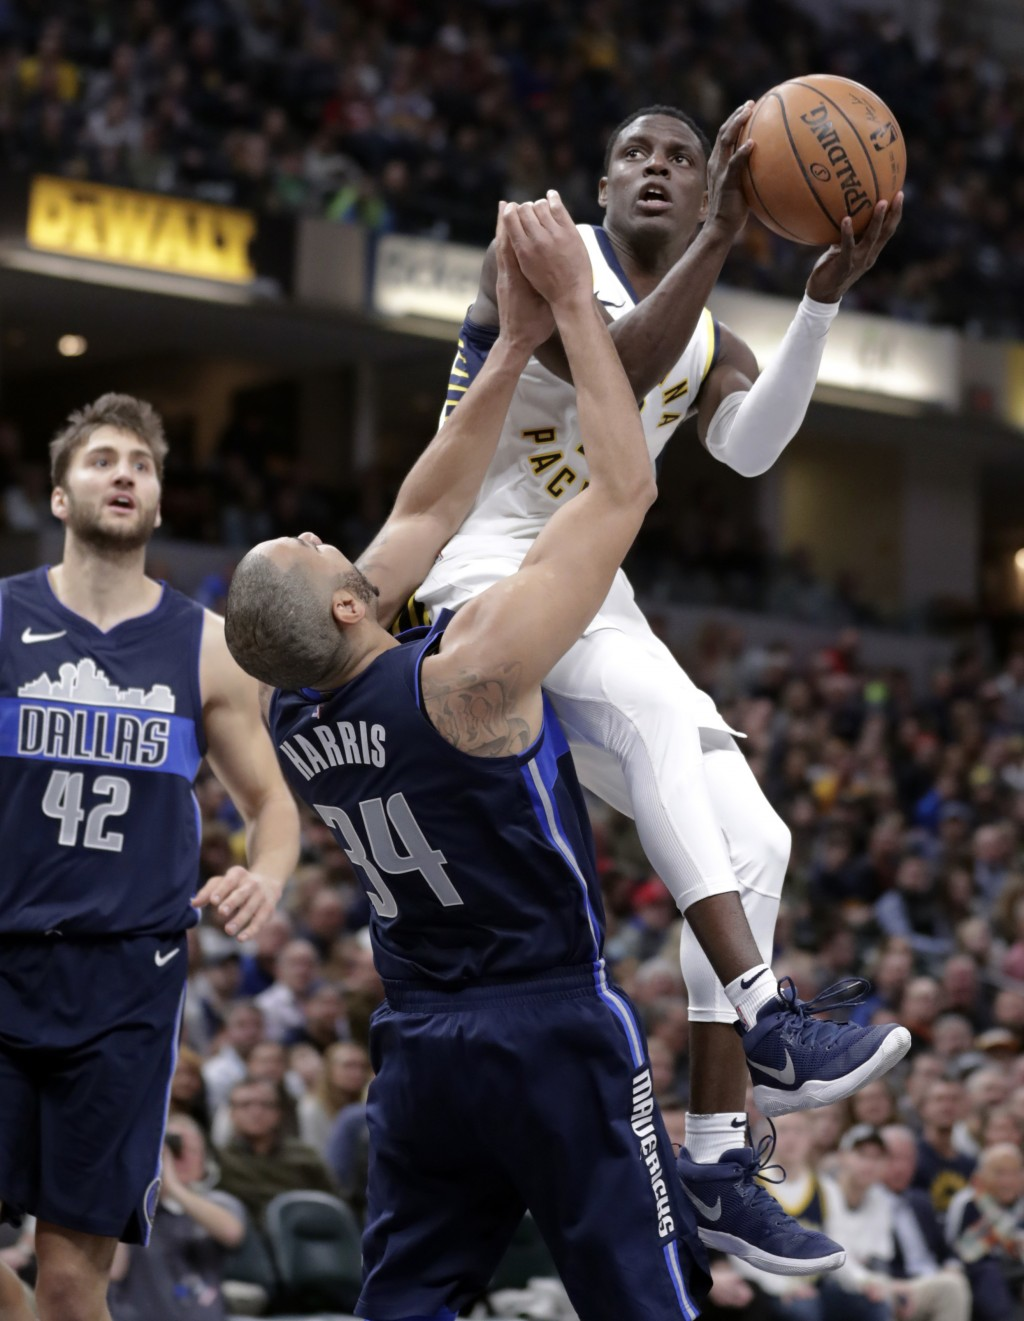 Indiana Pacers guard Darren Collison (2) shoots over Dallas Mavericks guard Devin Harris (34) during the second half of an NBA basketball game in Indi...